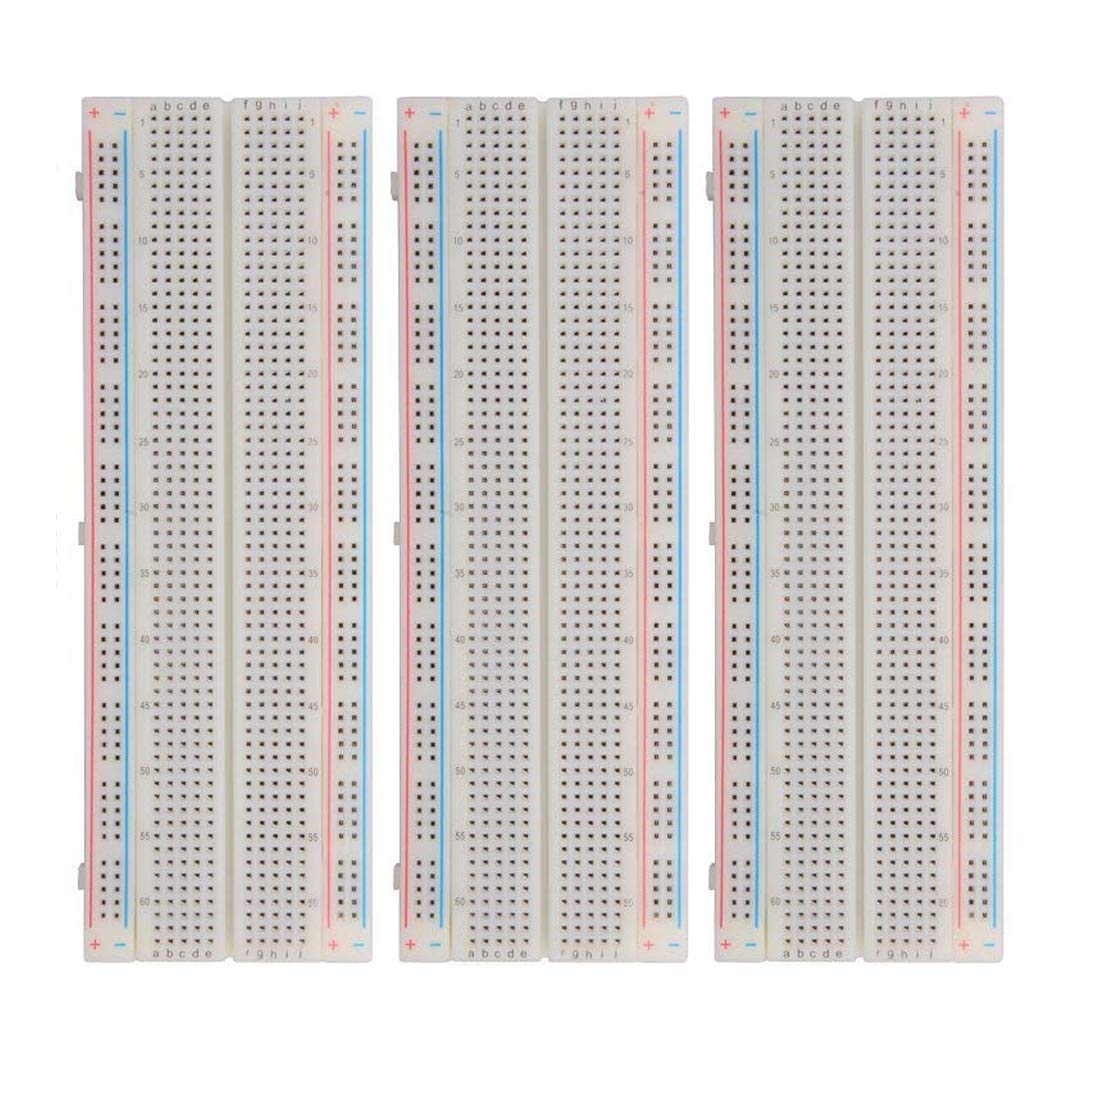 HiLetgo MB-102 MB102 830 Ties Solderless Protype Breadboard Solderless BreadBoard 165 /× 55 /× 10 mm pour Circuit Connects Electronic Experiment